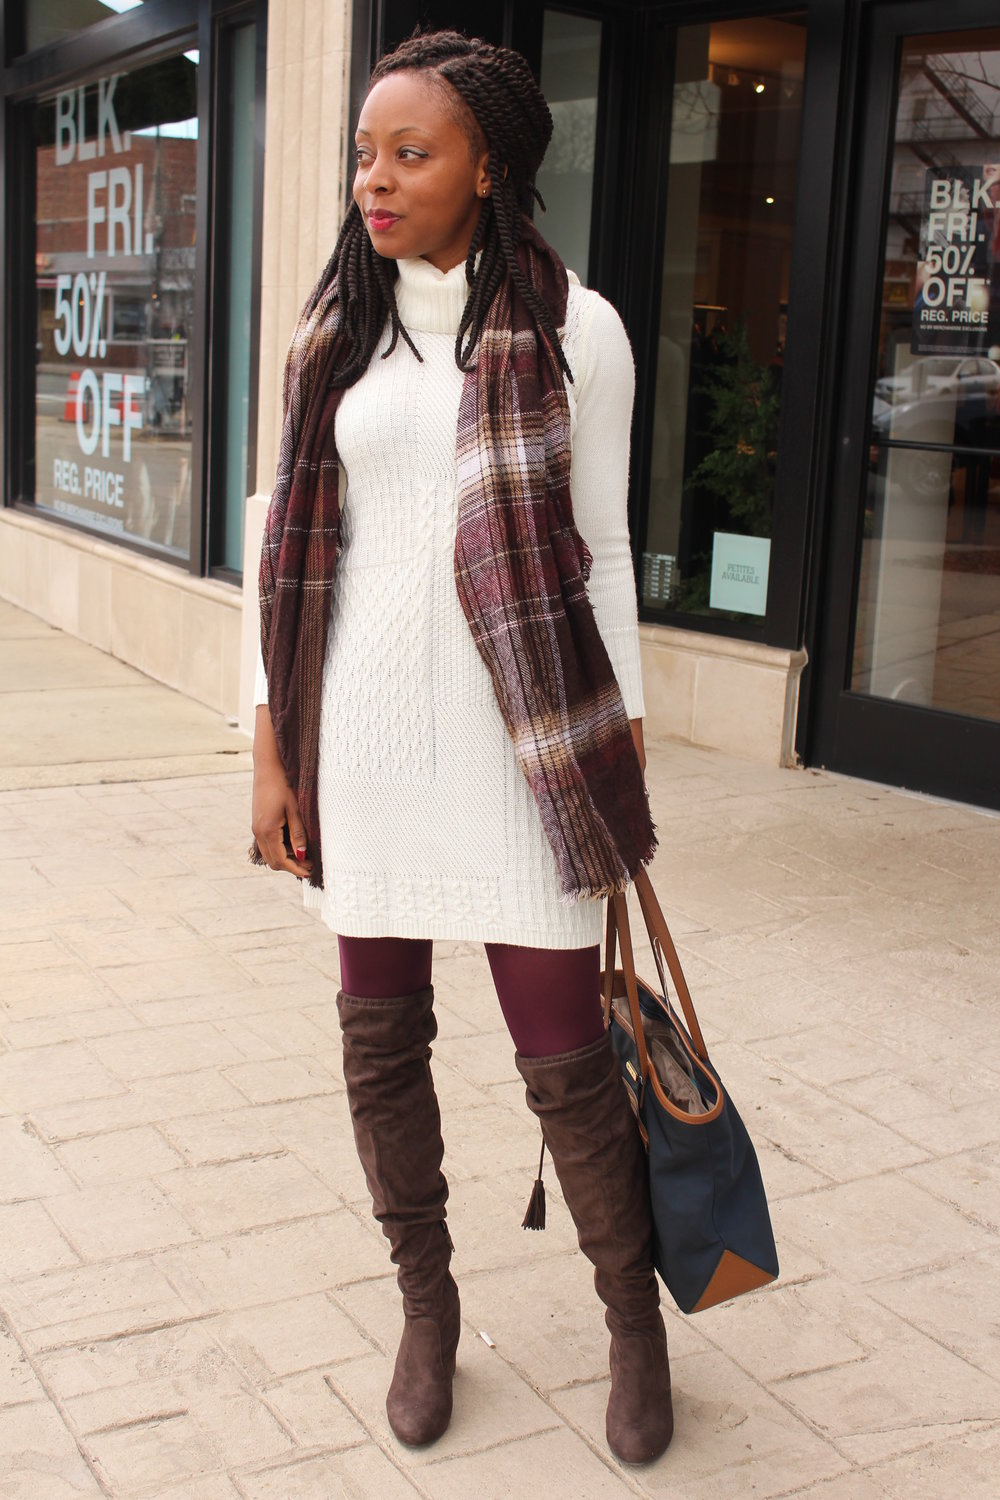 sweater dress and over-the-knee boots